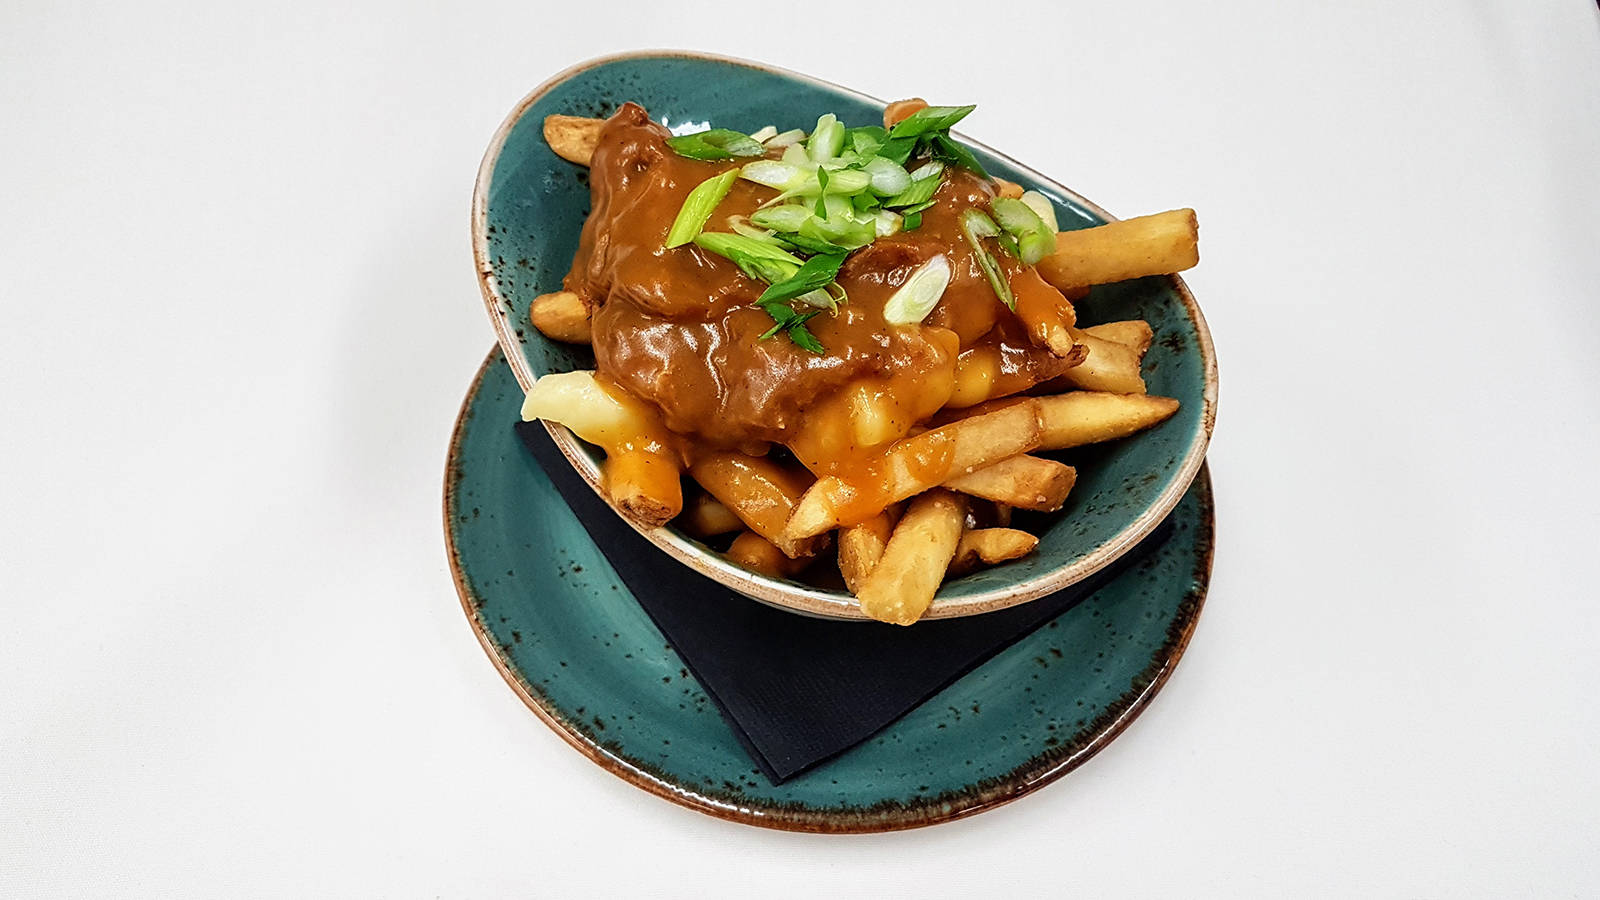 For Mealshare's annual Poutine with Purpose event, LURE Restaurant and Bar presents its Pulled Pork Poutine – house-smoked pulled pork, Kennebec fries tossed with fresh Armstrong, B.C. cheese curds, finished with Lure's chicken-duck gravy.